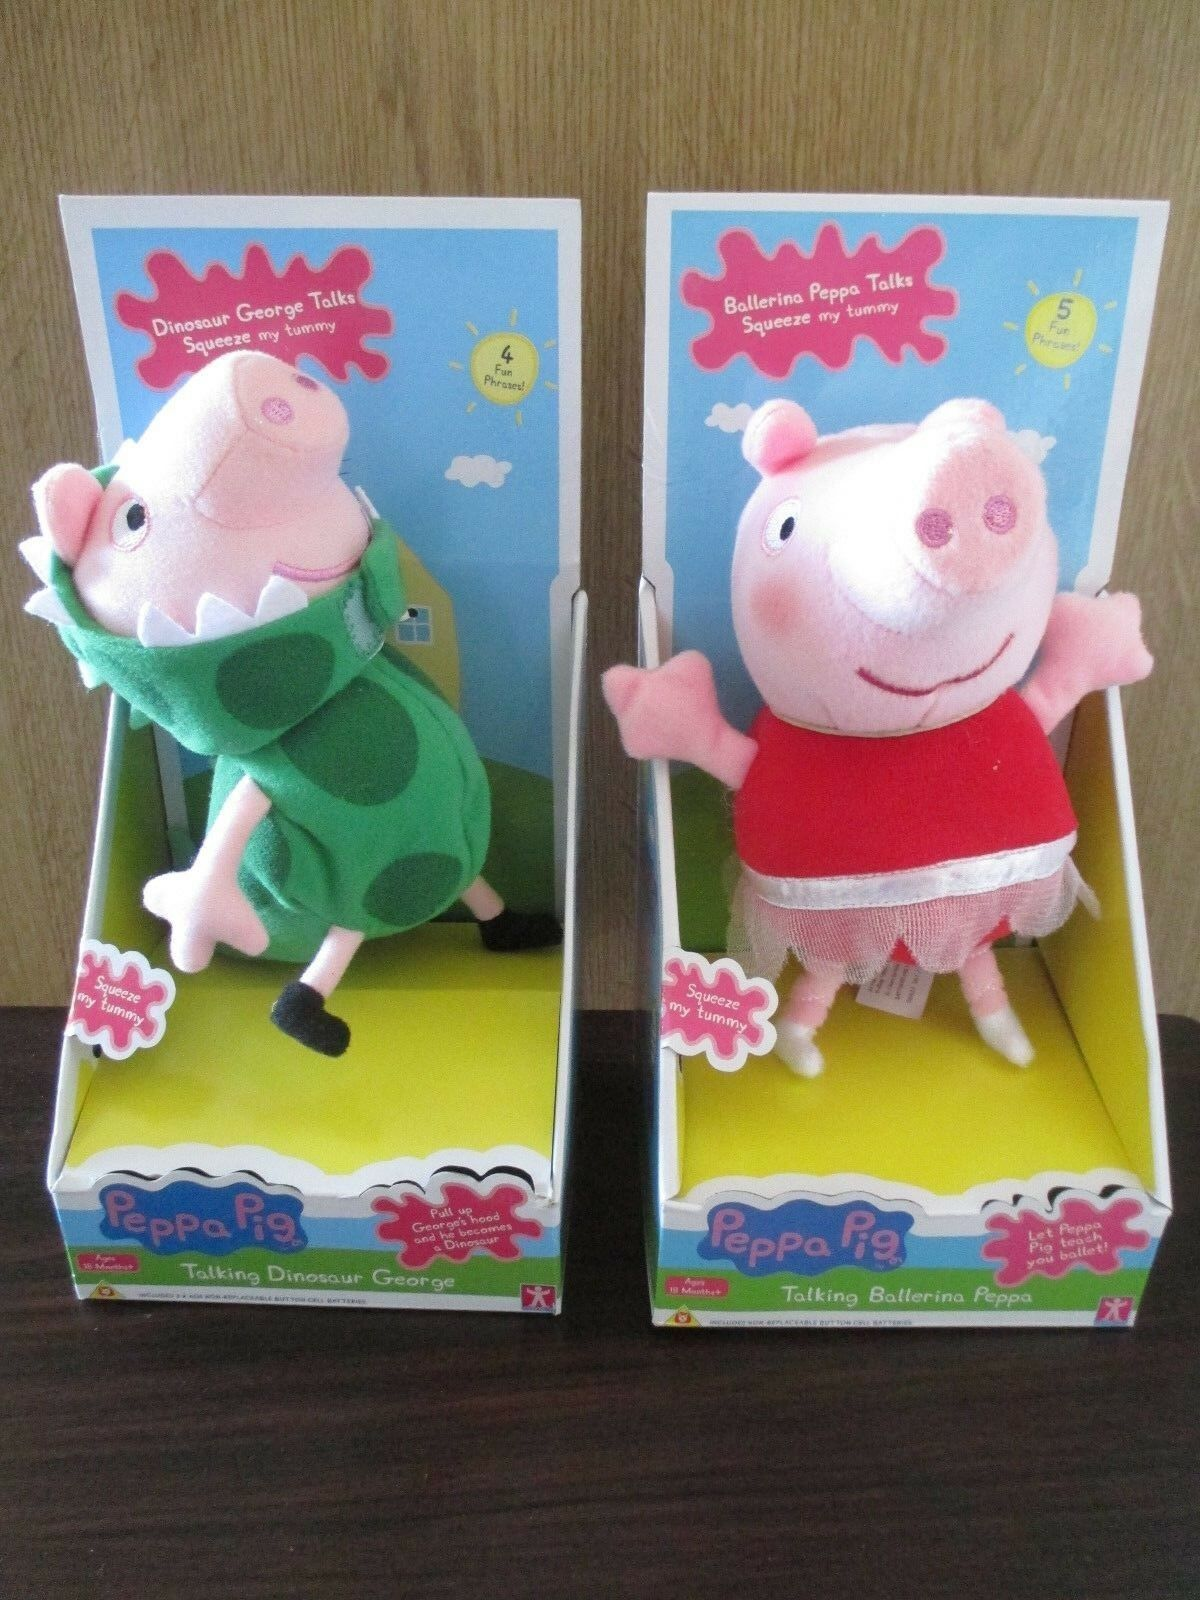 Ballerina Peppa Pig Talking Dinosaur George Soft Toy Toy Toy 8 Inches Tall NEW & BOXED e23f5a